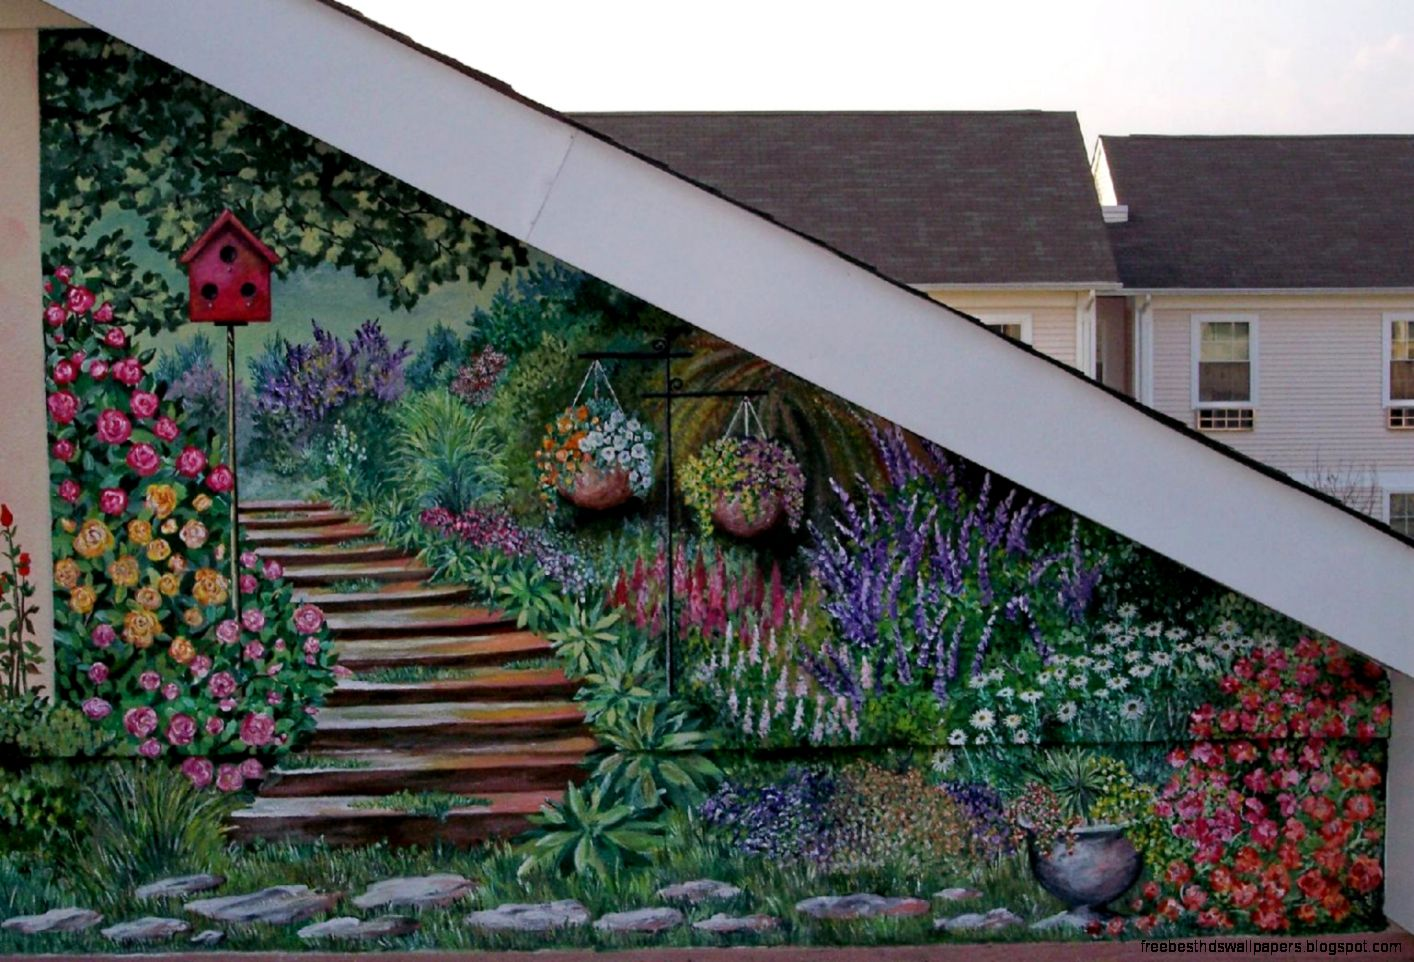 Wall Murals For Outdoor Walls Wallpaper | Free Best Hd Wallpapers